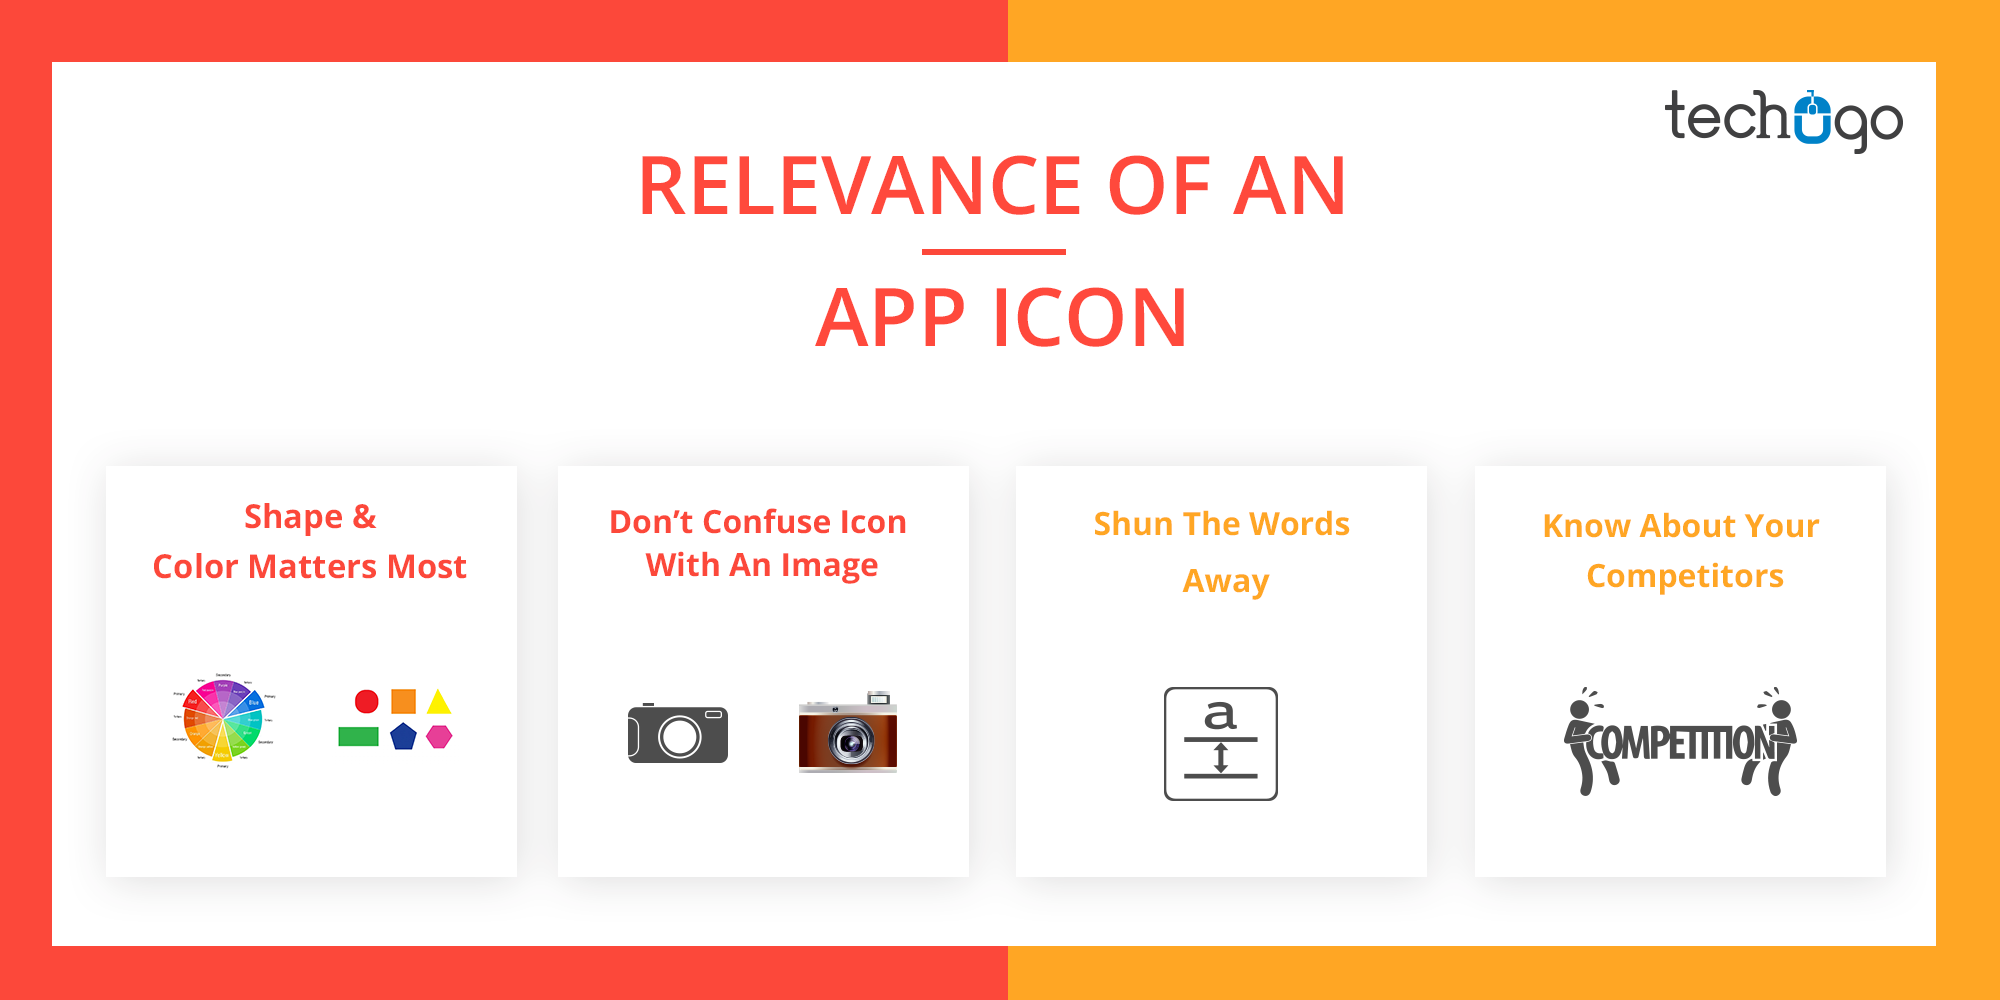 Relevance of An App Icon